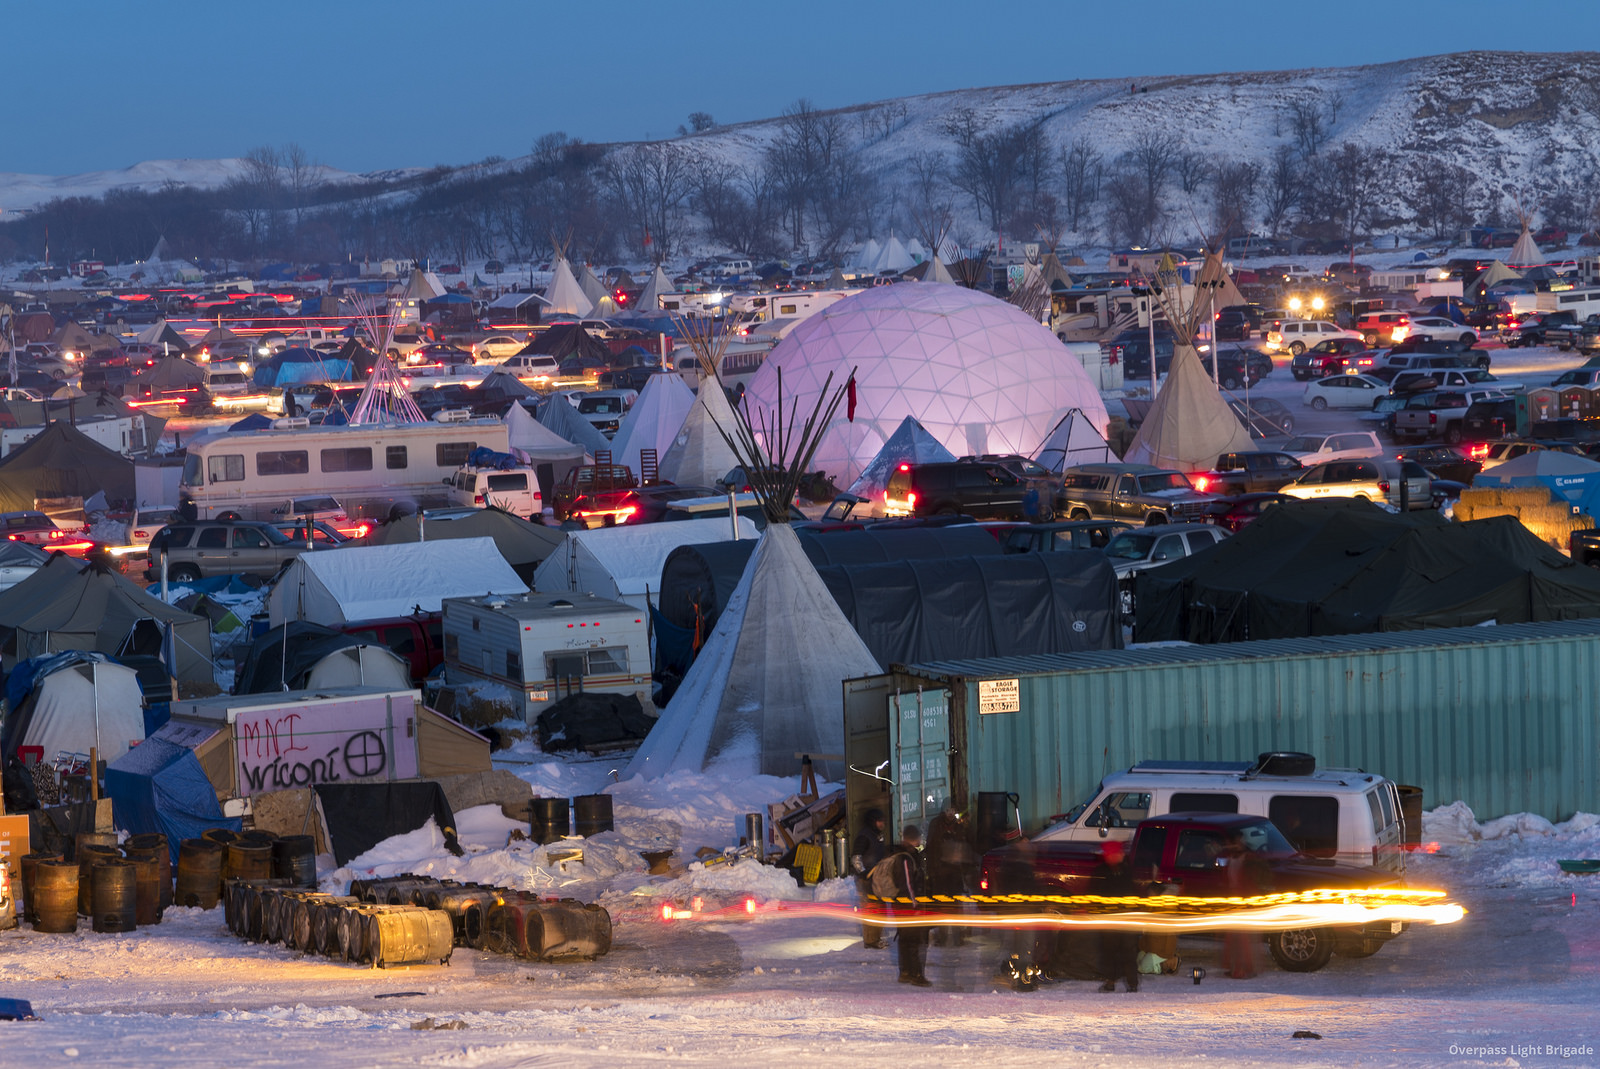 The Oceti Sakowin Resistance Camp on Dec. 4, 2016. (Photo by Joe Brusky/Flickr User)